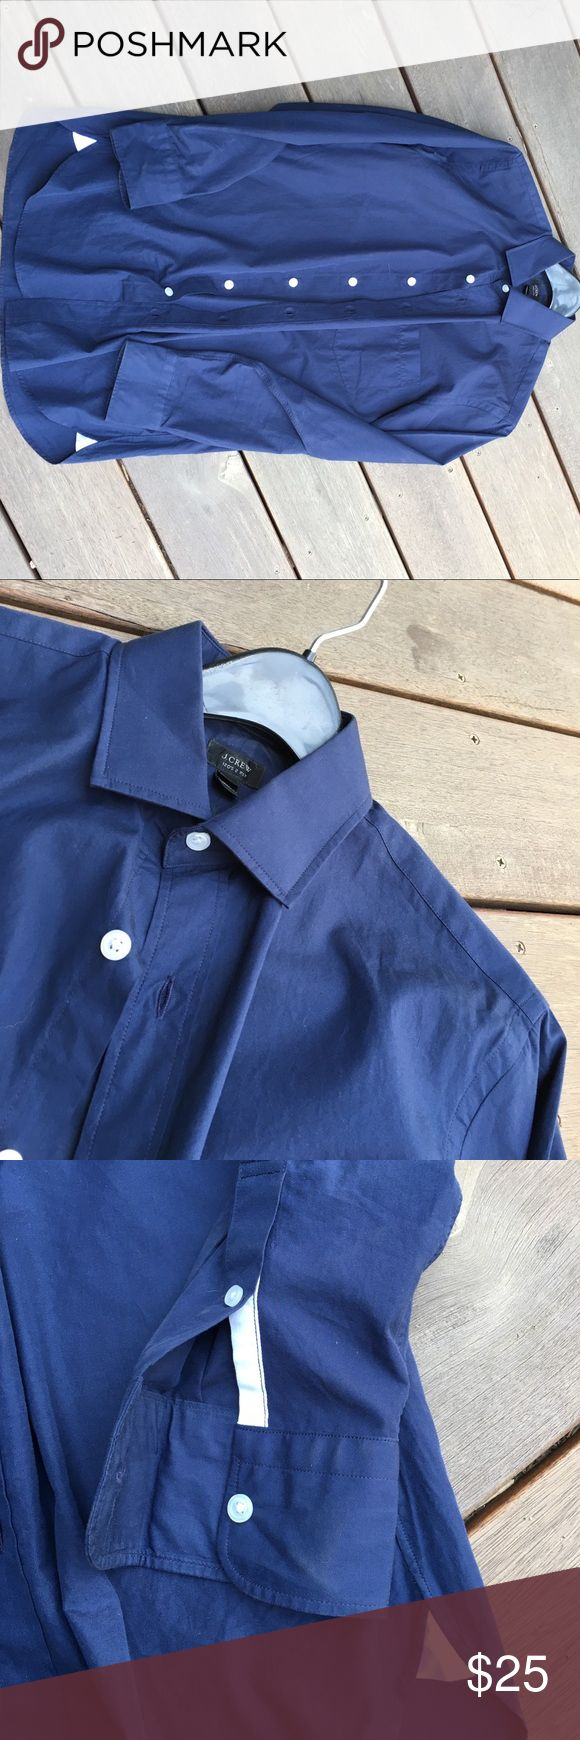 Jcrew blue men's button down shirt J crew men's button down. 120s 2 ply. Size small. Ludlow. In EUC. No rips, tears or stains. Hubby just doesn't wear anymore. J. Crew Shirts Casual Button Down Shirts